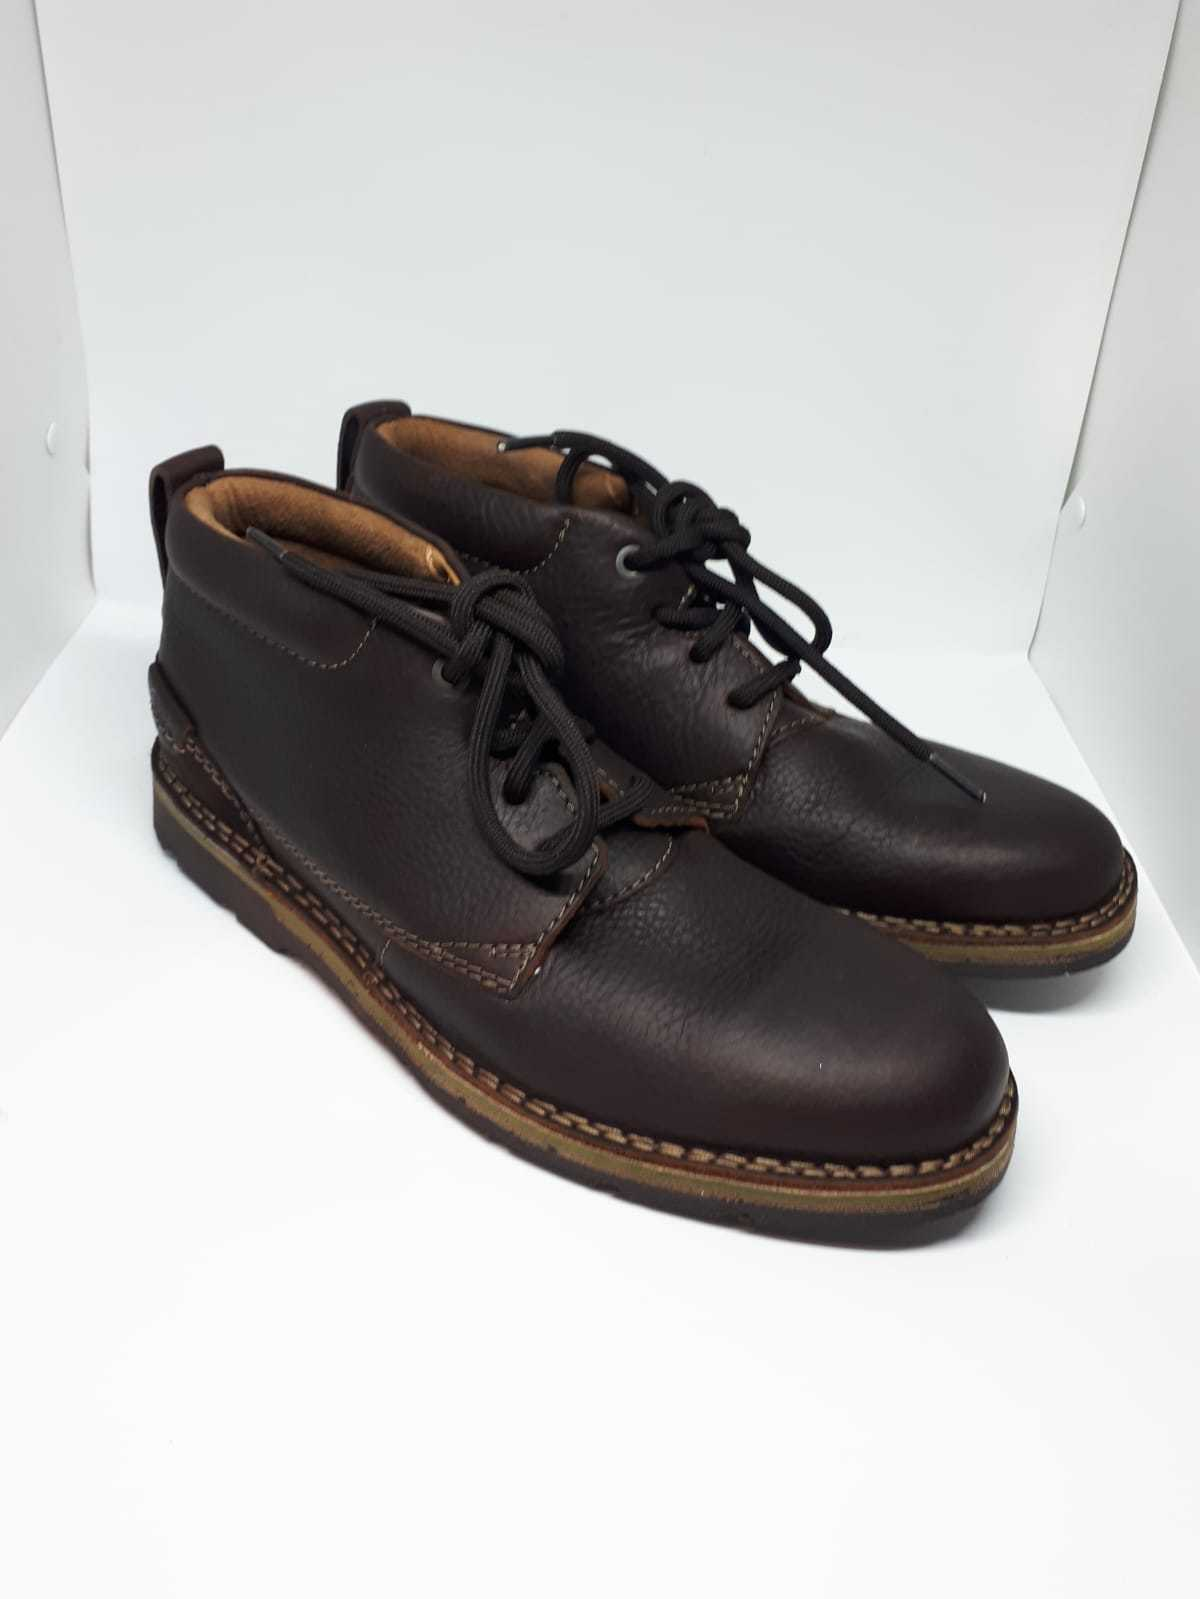 NEW CLARKS - Collection  Uomo Dark Braun Leder Schuhe - CLARKS UK Größe 7G e890c7